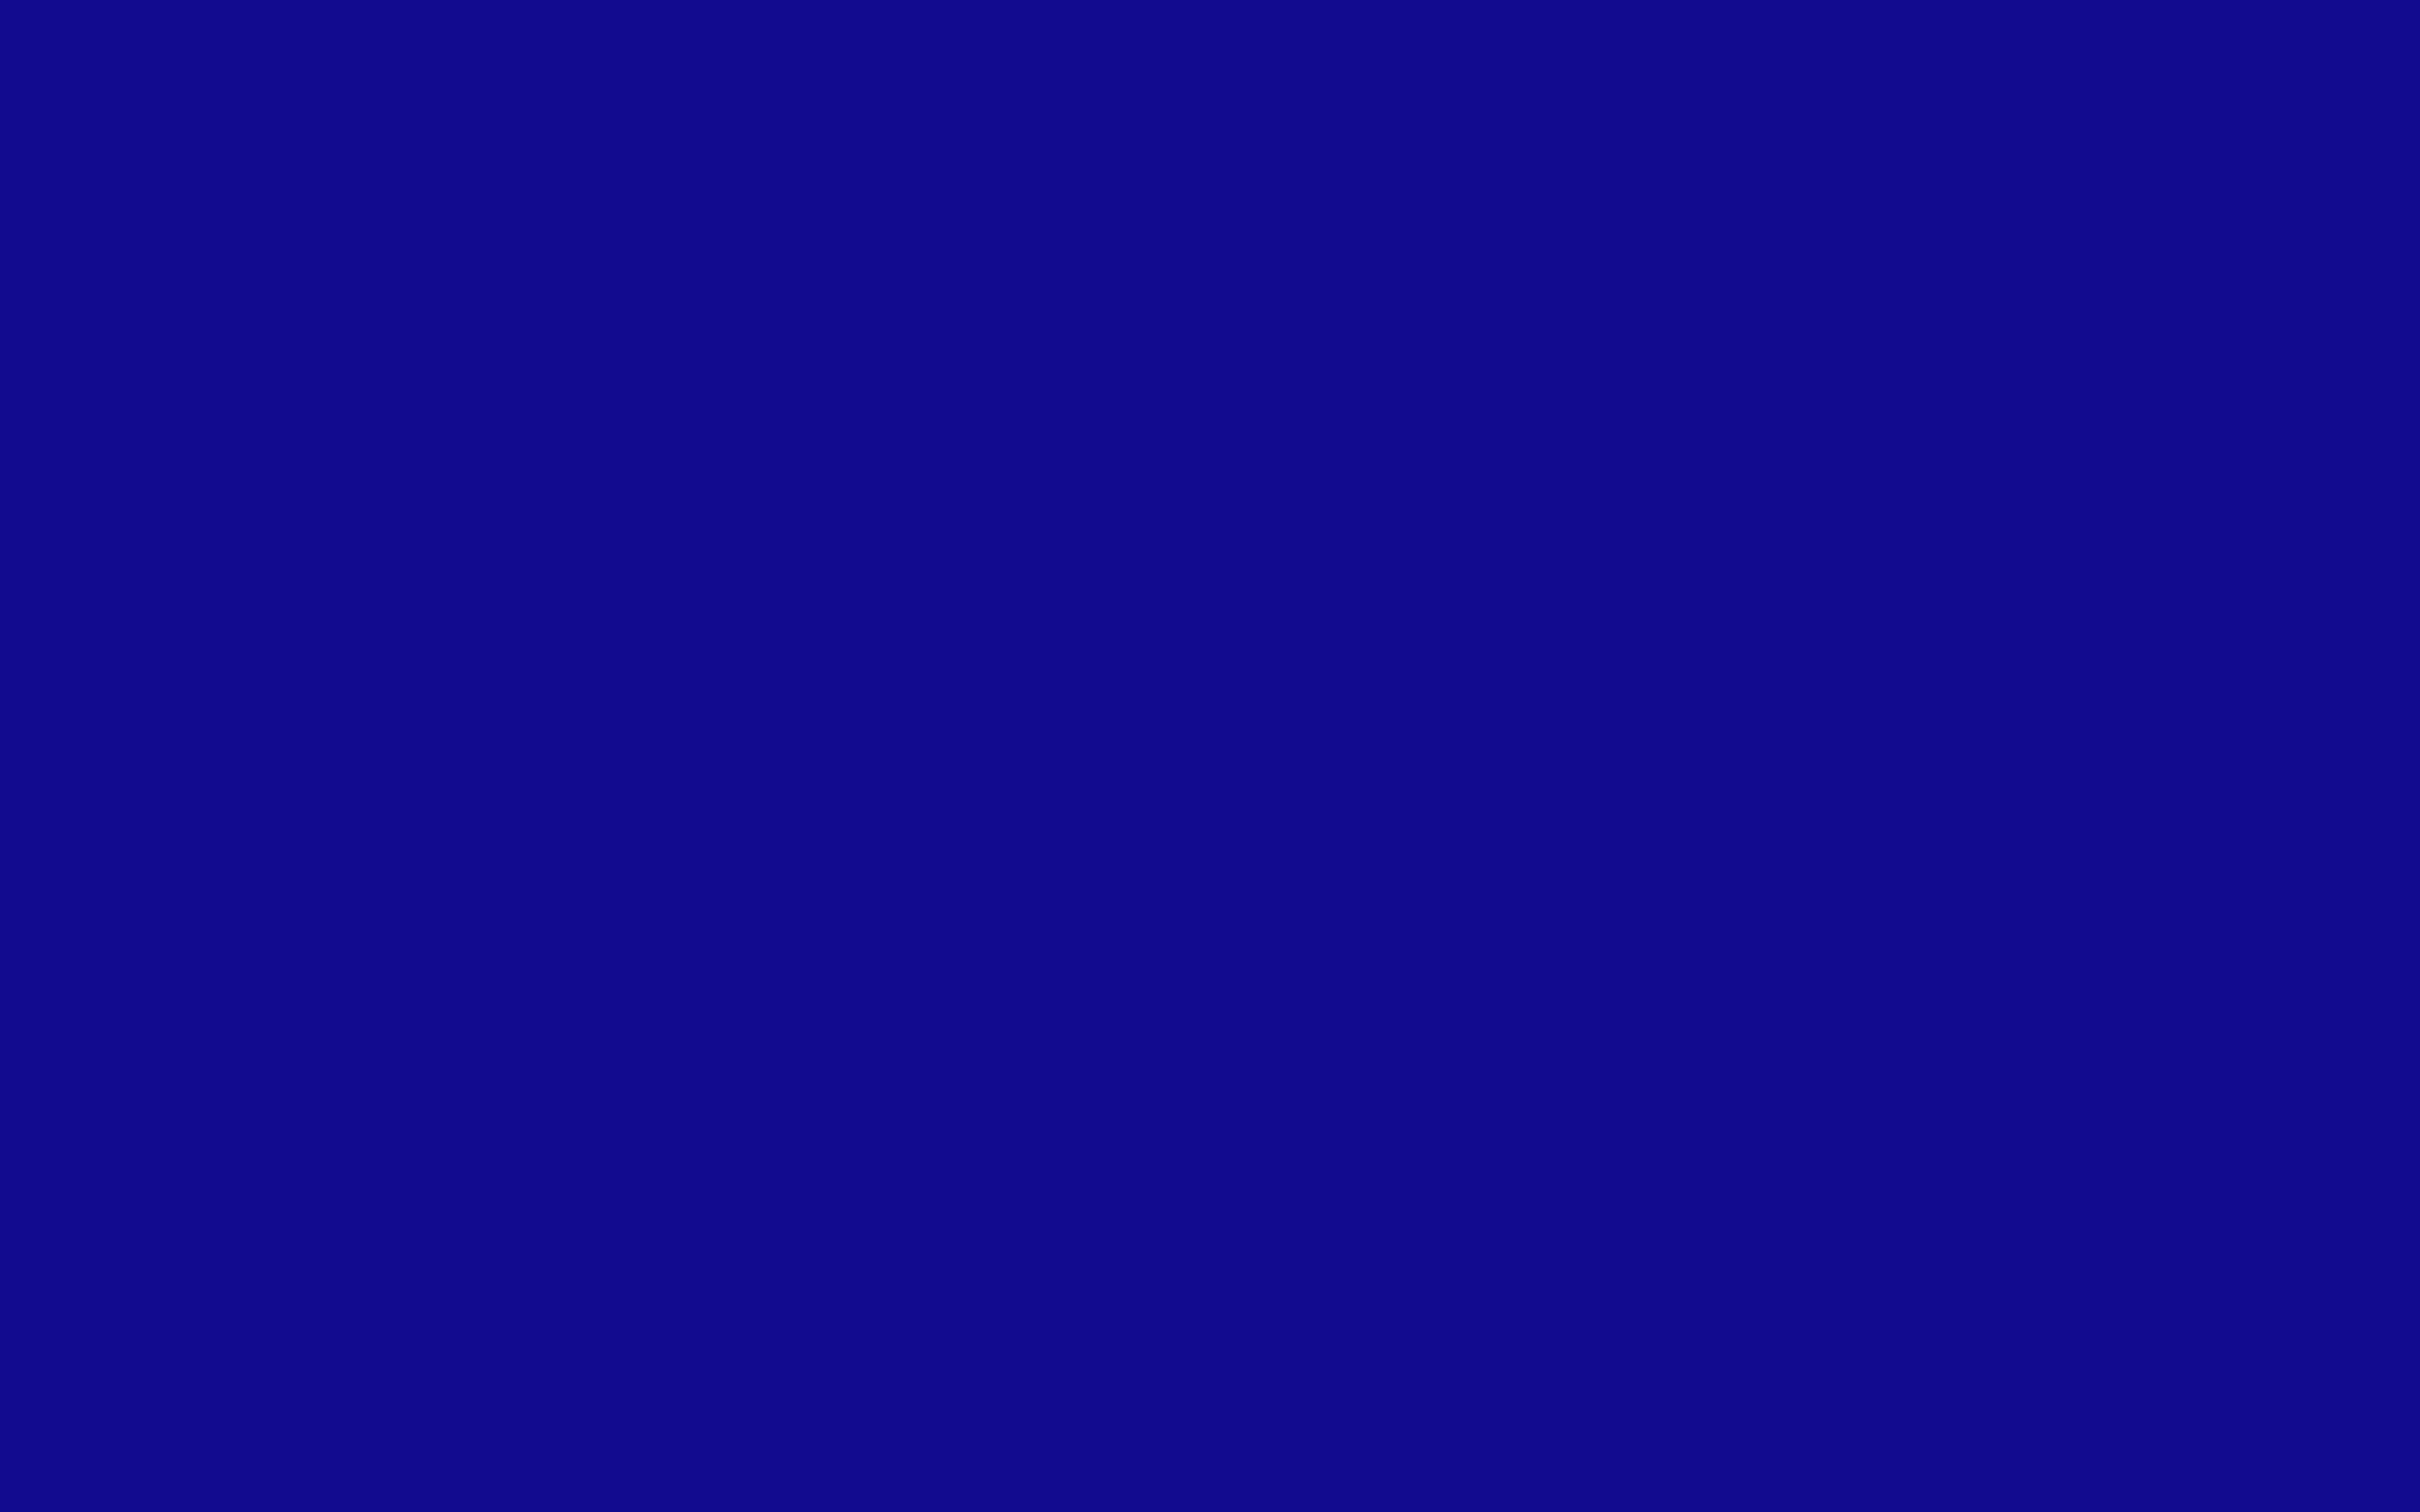 2880x1800 Ultramarine Solid Color Background 2880x1800